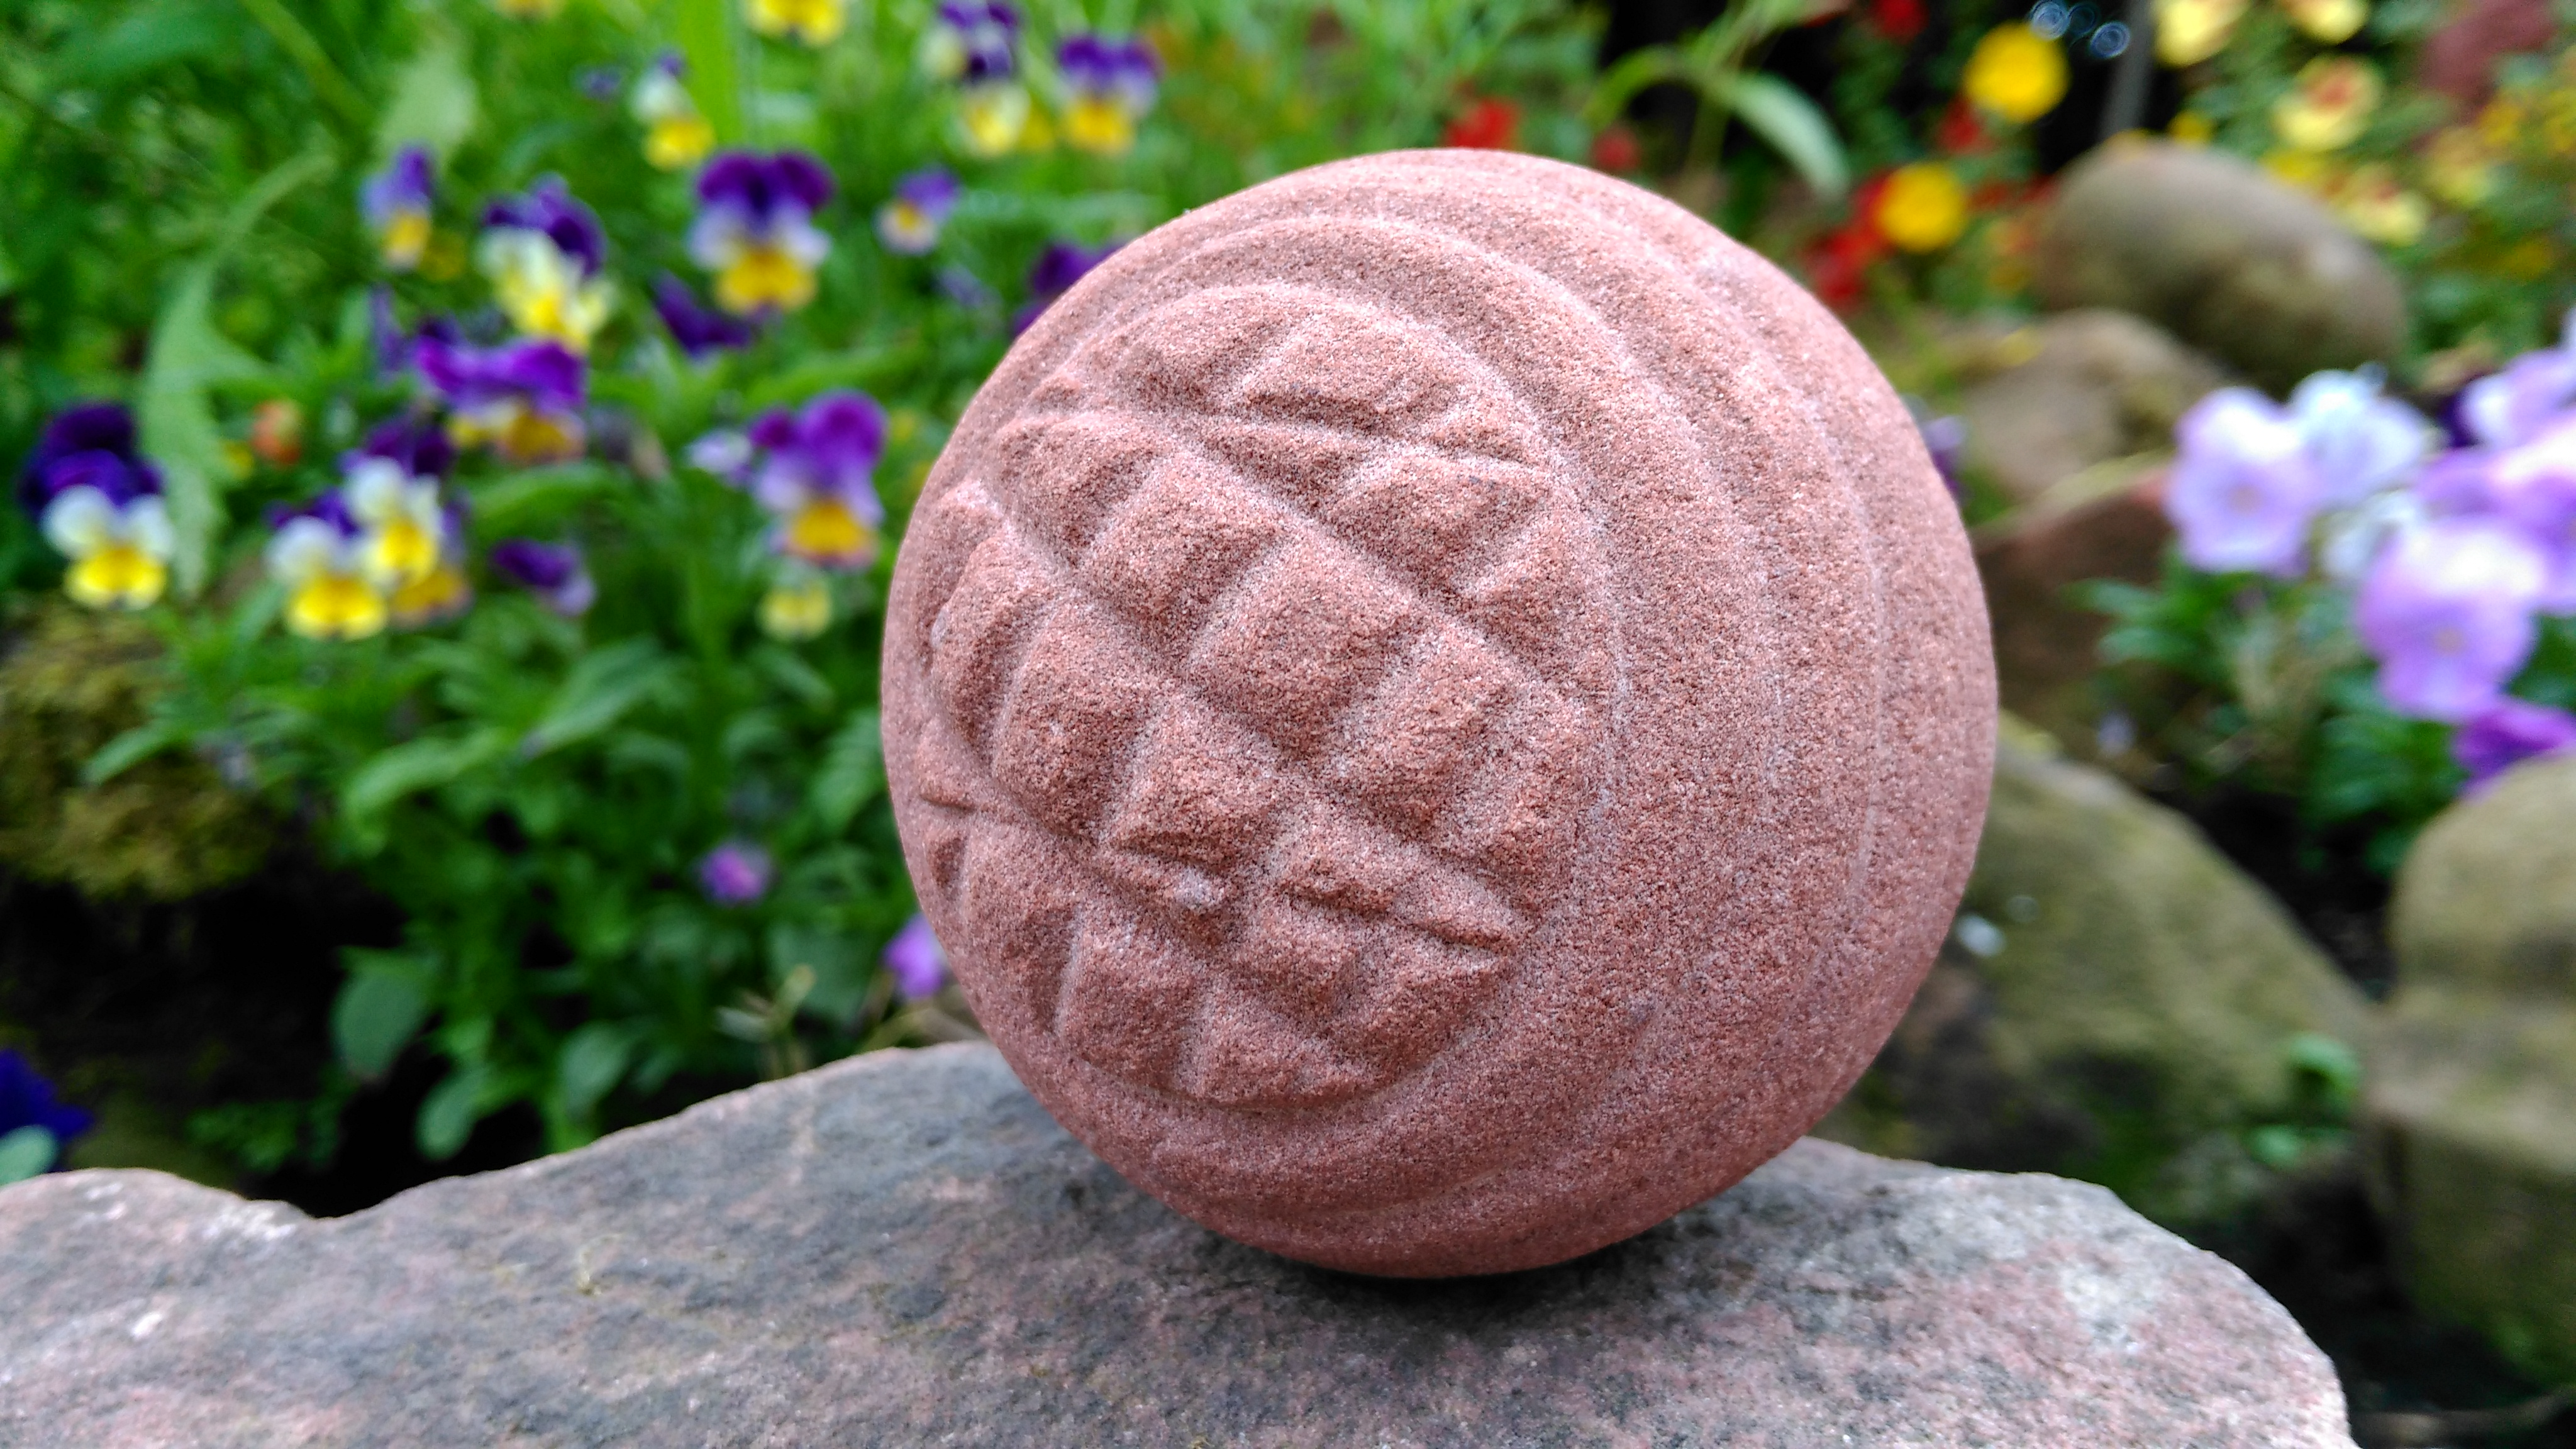 The form of this carved stone ball is based closely on a Late Neolithic ball found at Hillhead, St Ola, Orkney in the late 19th Century. The carved square patterns, chevrons and spiralling lines are also found on Orcadian Neolithic grooved ware pottery and decorated stonework. It is possible that the spiralling design and pleated chevron could provide a rare representation of an organic cord binding and wrapping around a carved stone ball that normally wouldn't survive. This ball has been pecked and carved to shape by Orcadian archaeologist Christopher Gee using the same local stone tools and techniques as used in the Late Neolithic. The ball is made from Orkney Red Sandstone which has been used for its colour and texture in architecture at the Ness of Brodgar. The central upright column in Stucture 10's central dresser was made from the same peck-dressed red sandstone. During the Middle Ages red sandstone was also used in St Magnus Cathedral and other high status Orcadian buildings.